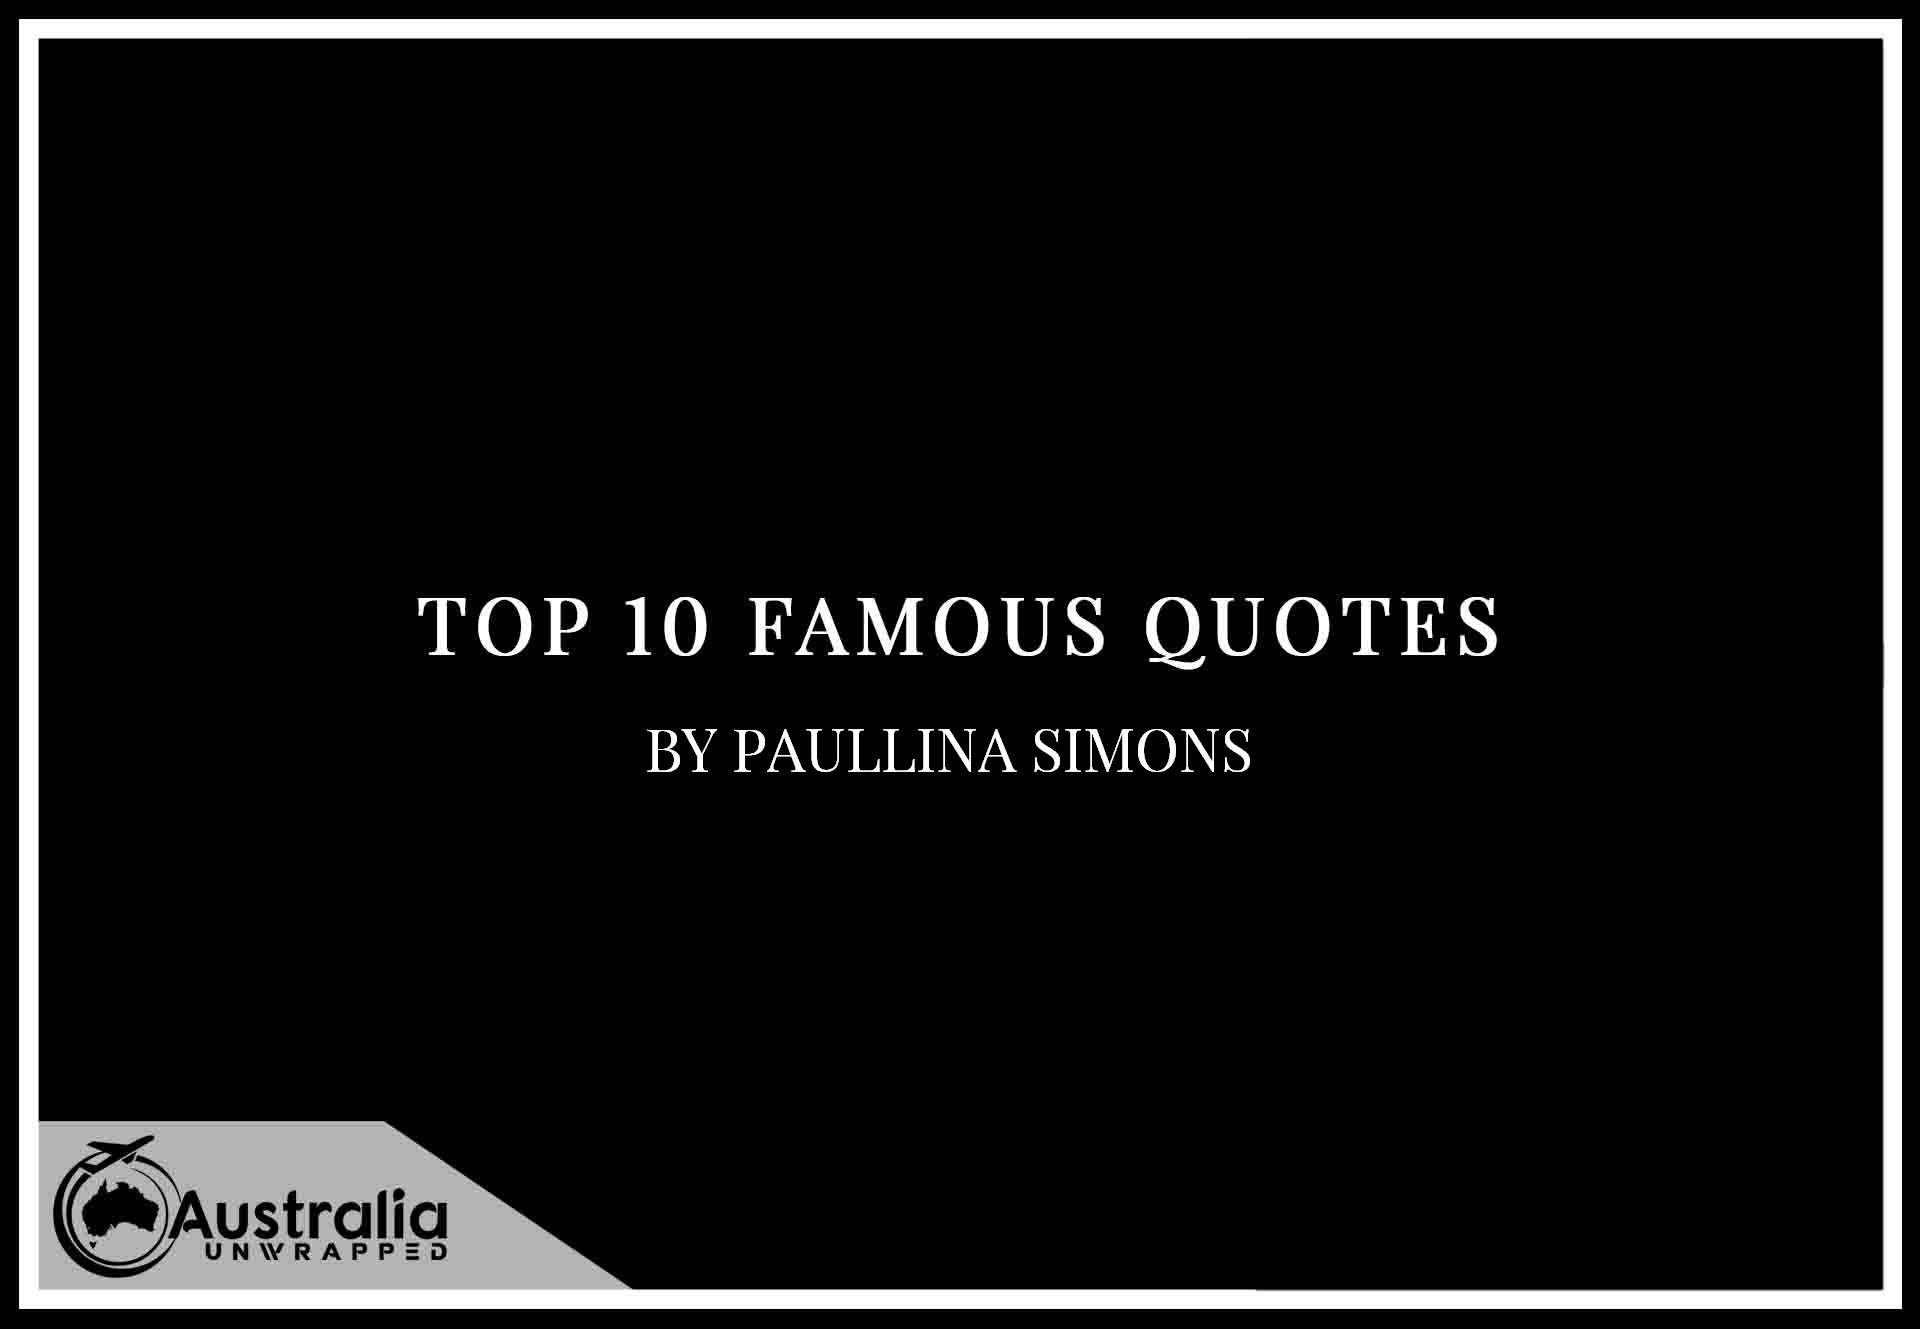 Top 10 Famous Quotes by Author Paullina Simons